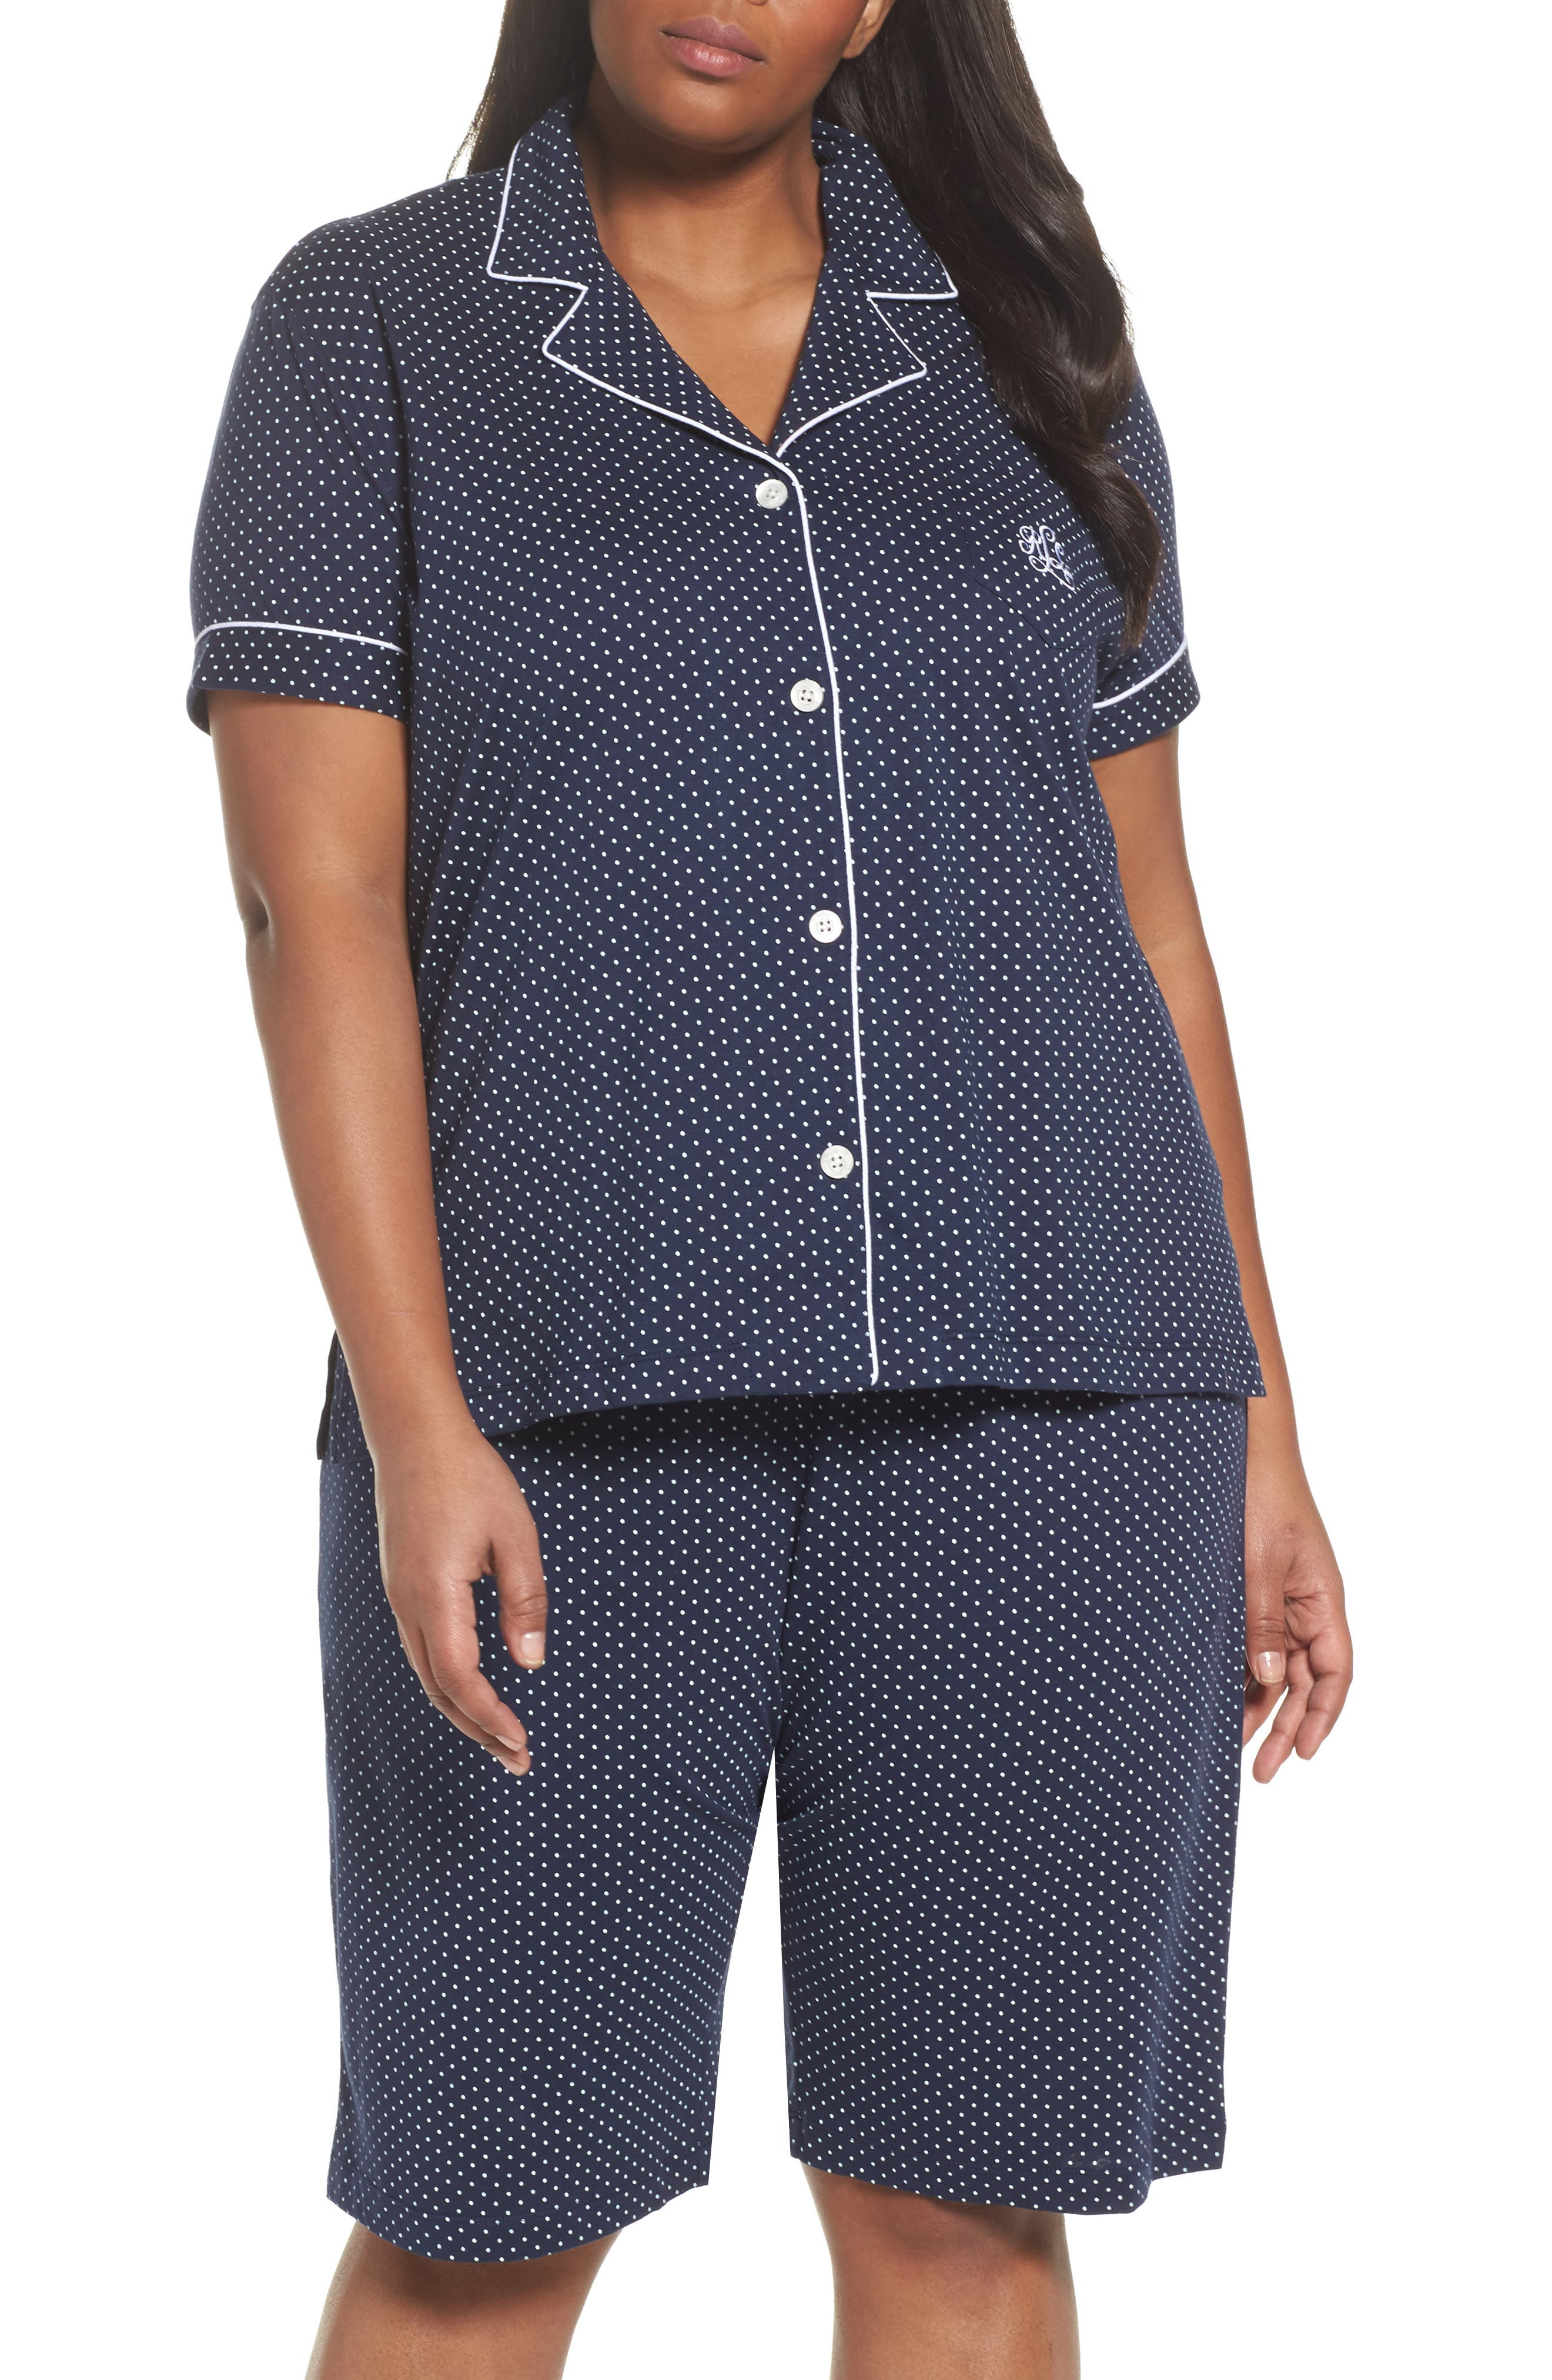 LAUREN RALPH LAUREN,                             Bermuda Pajamas,                             Main thumbnail 1, color,                             NAVY DOT